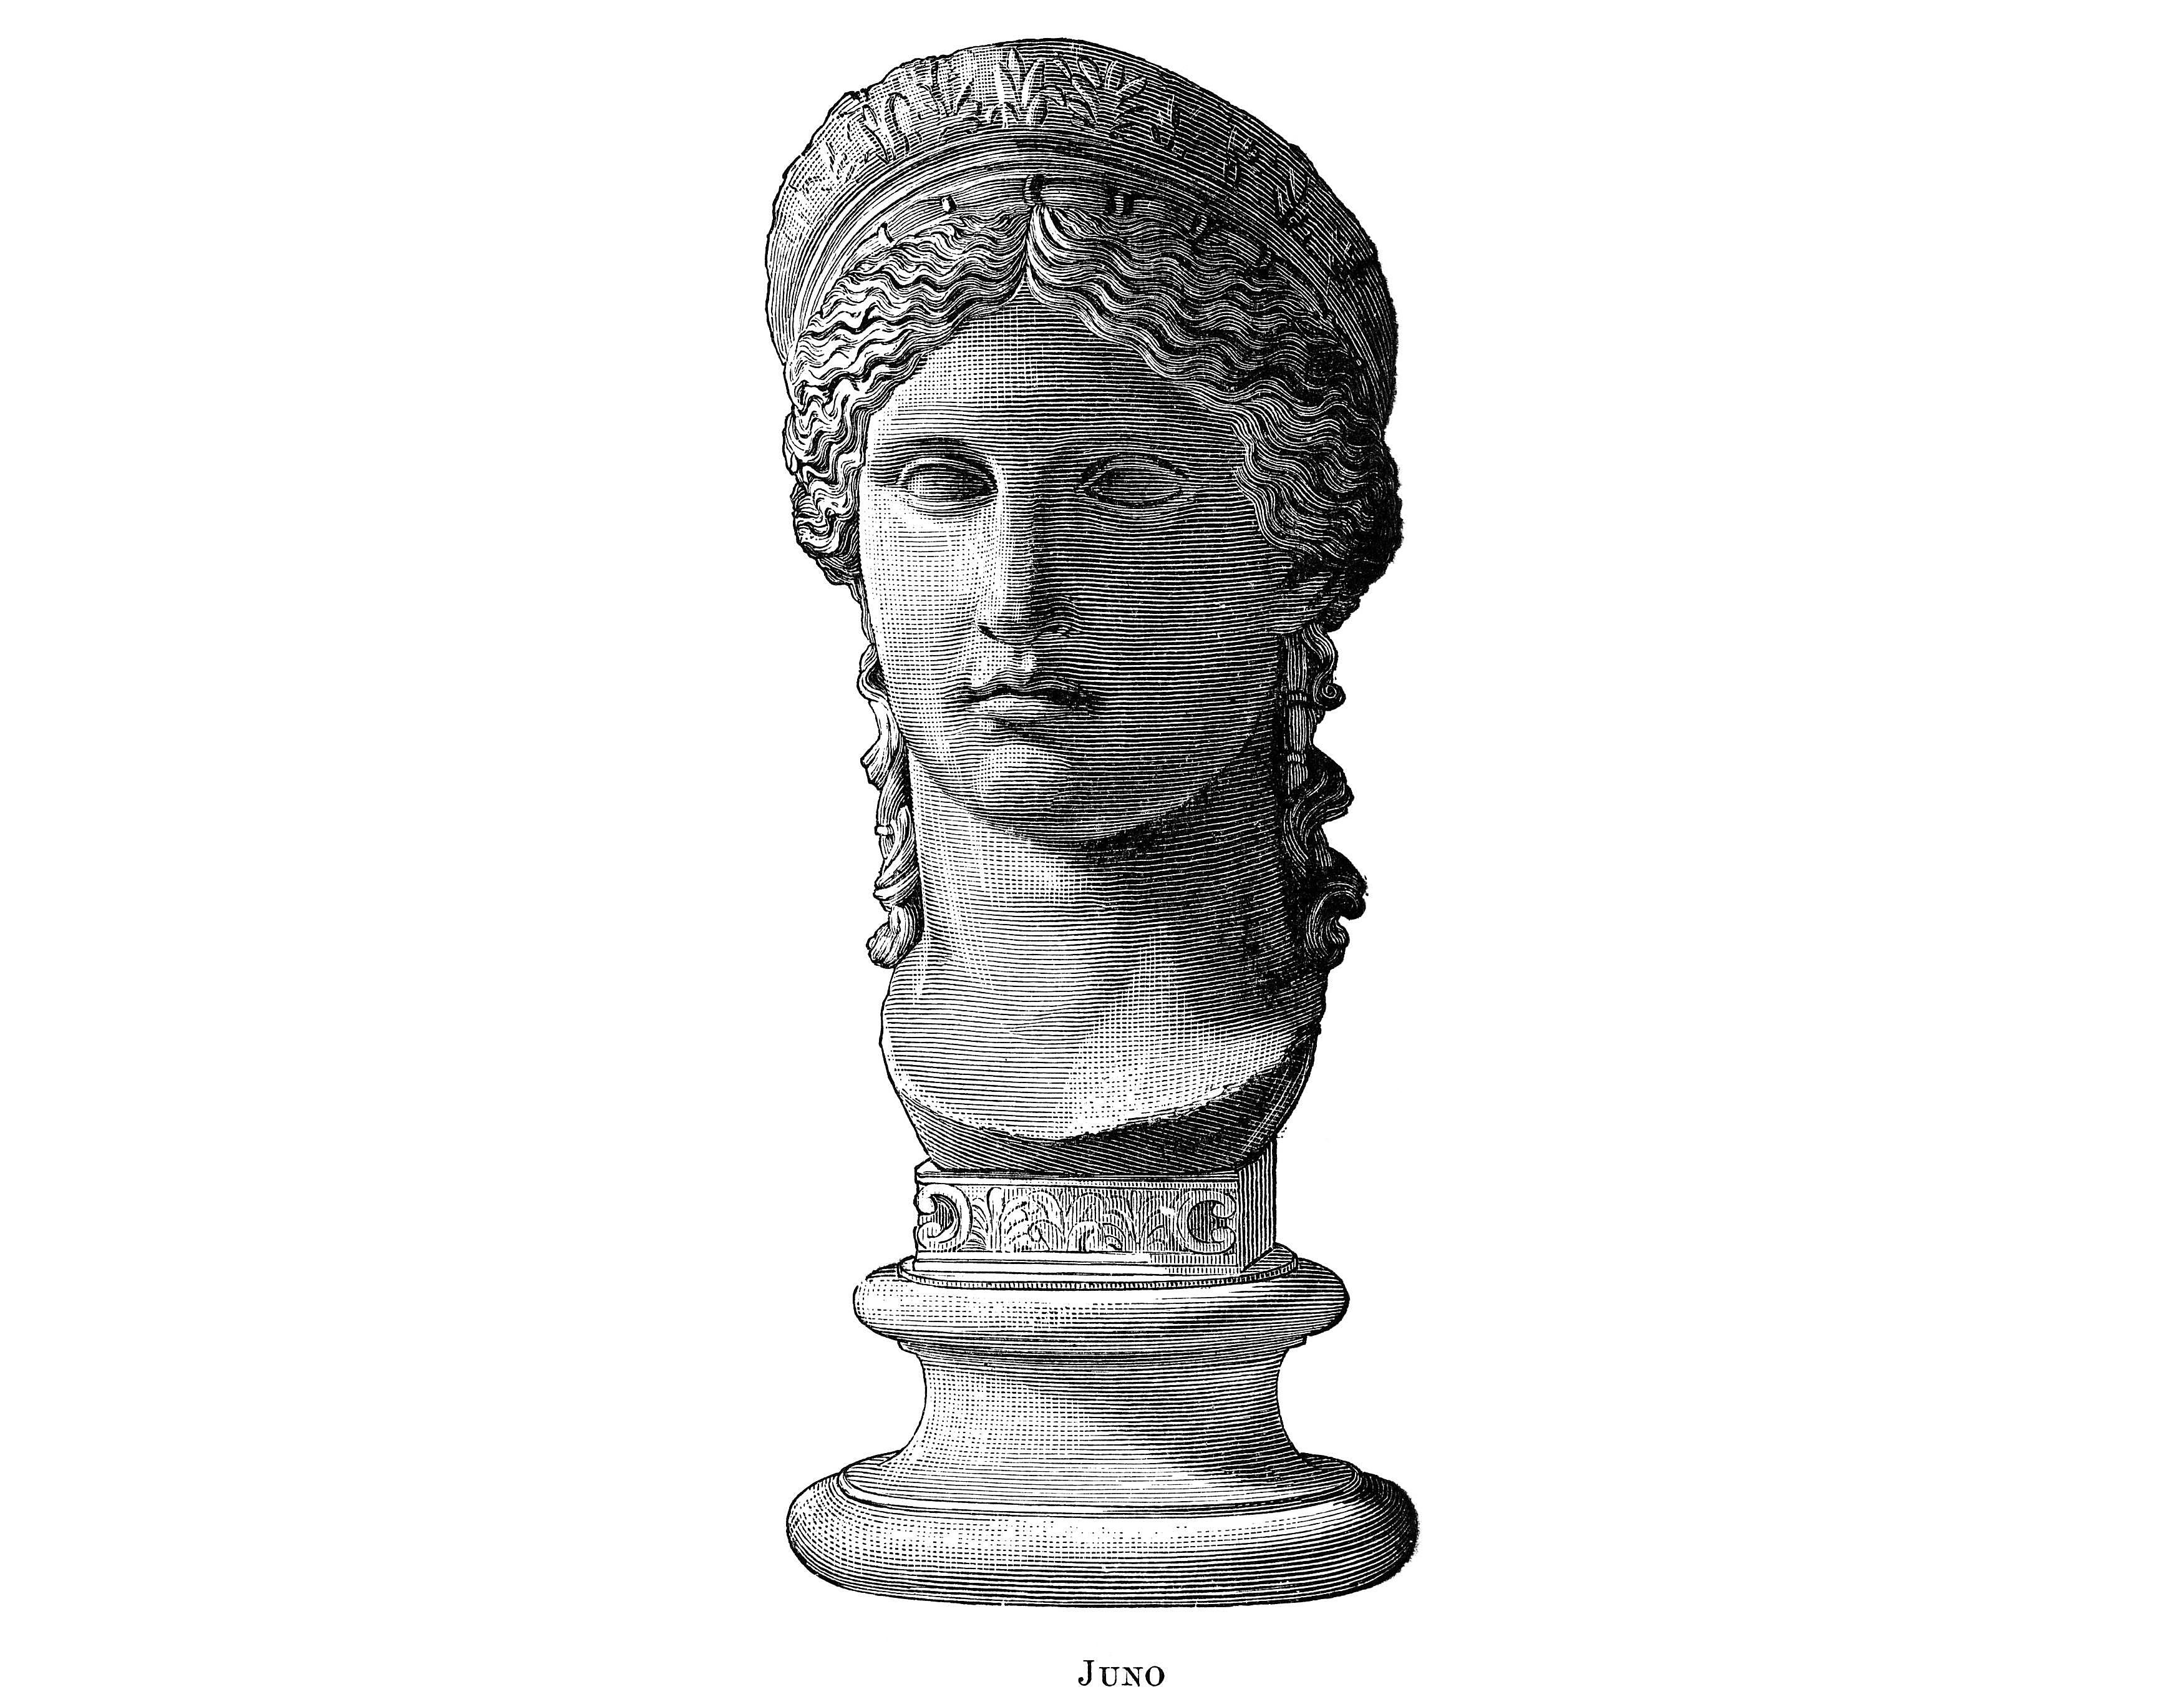 hera queen of the gods in greek mythology